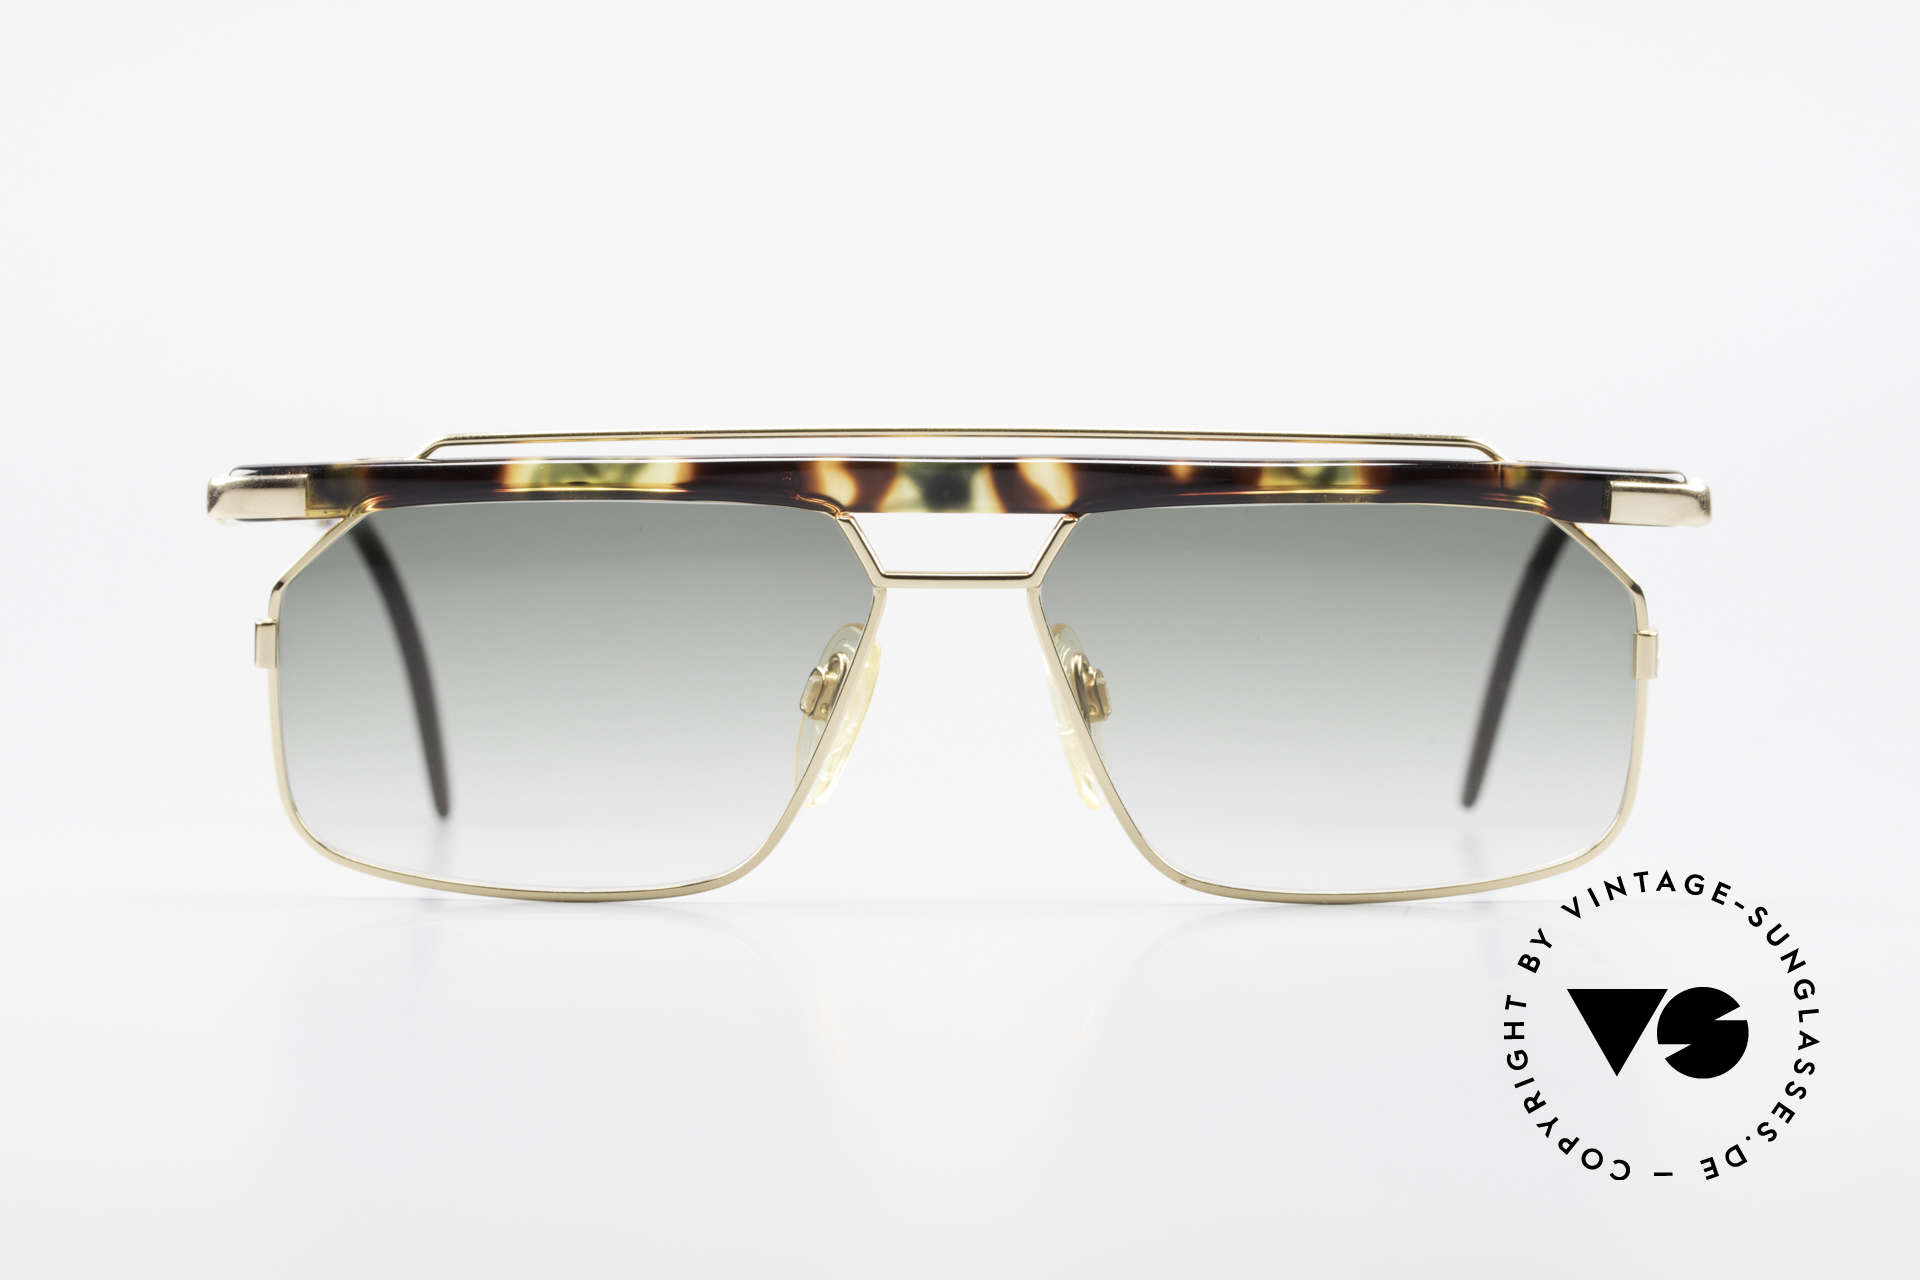 Cazal 752 Extraordinary Sunglasses 90's, one of the last models designed by CAri ZALloni, Made for Men